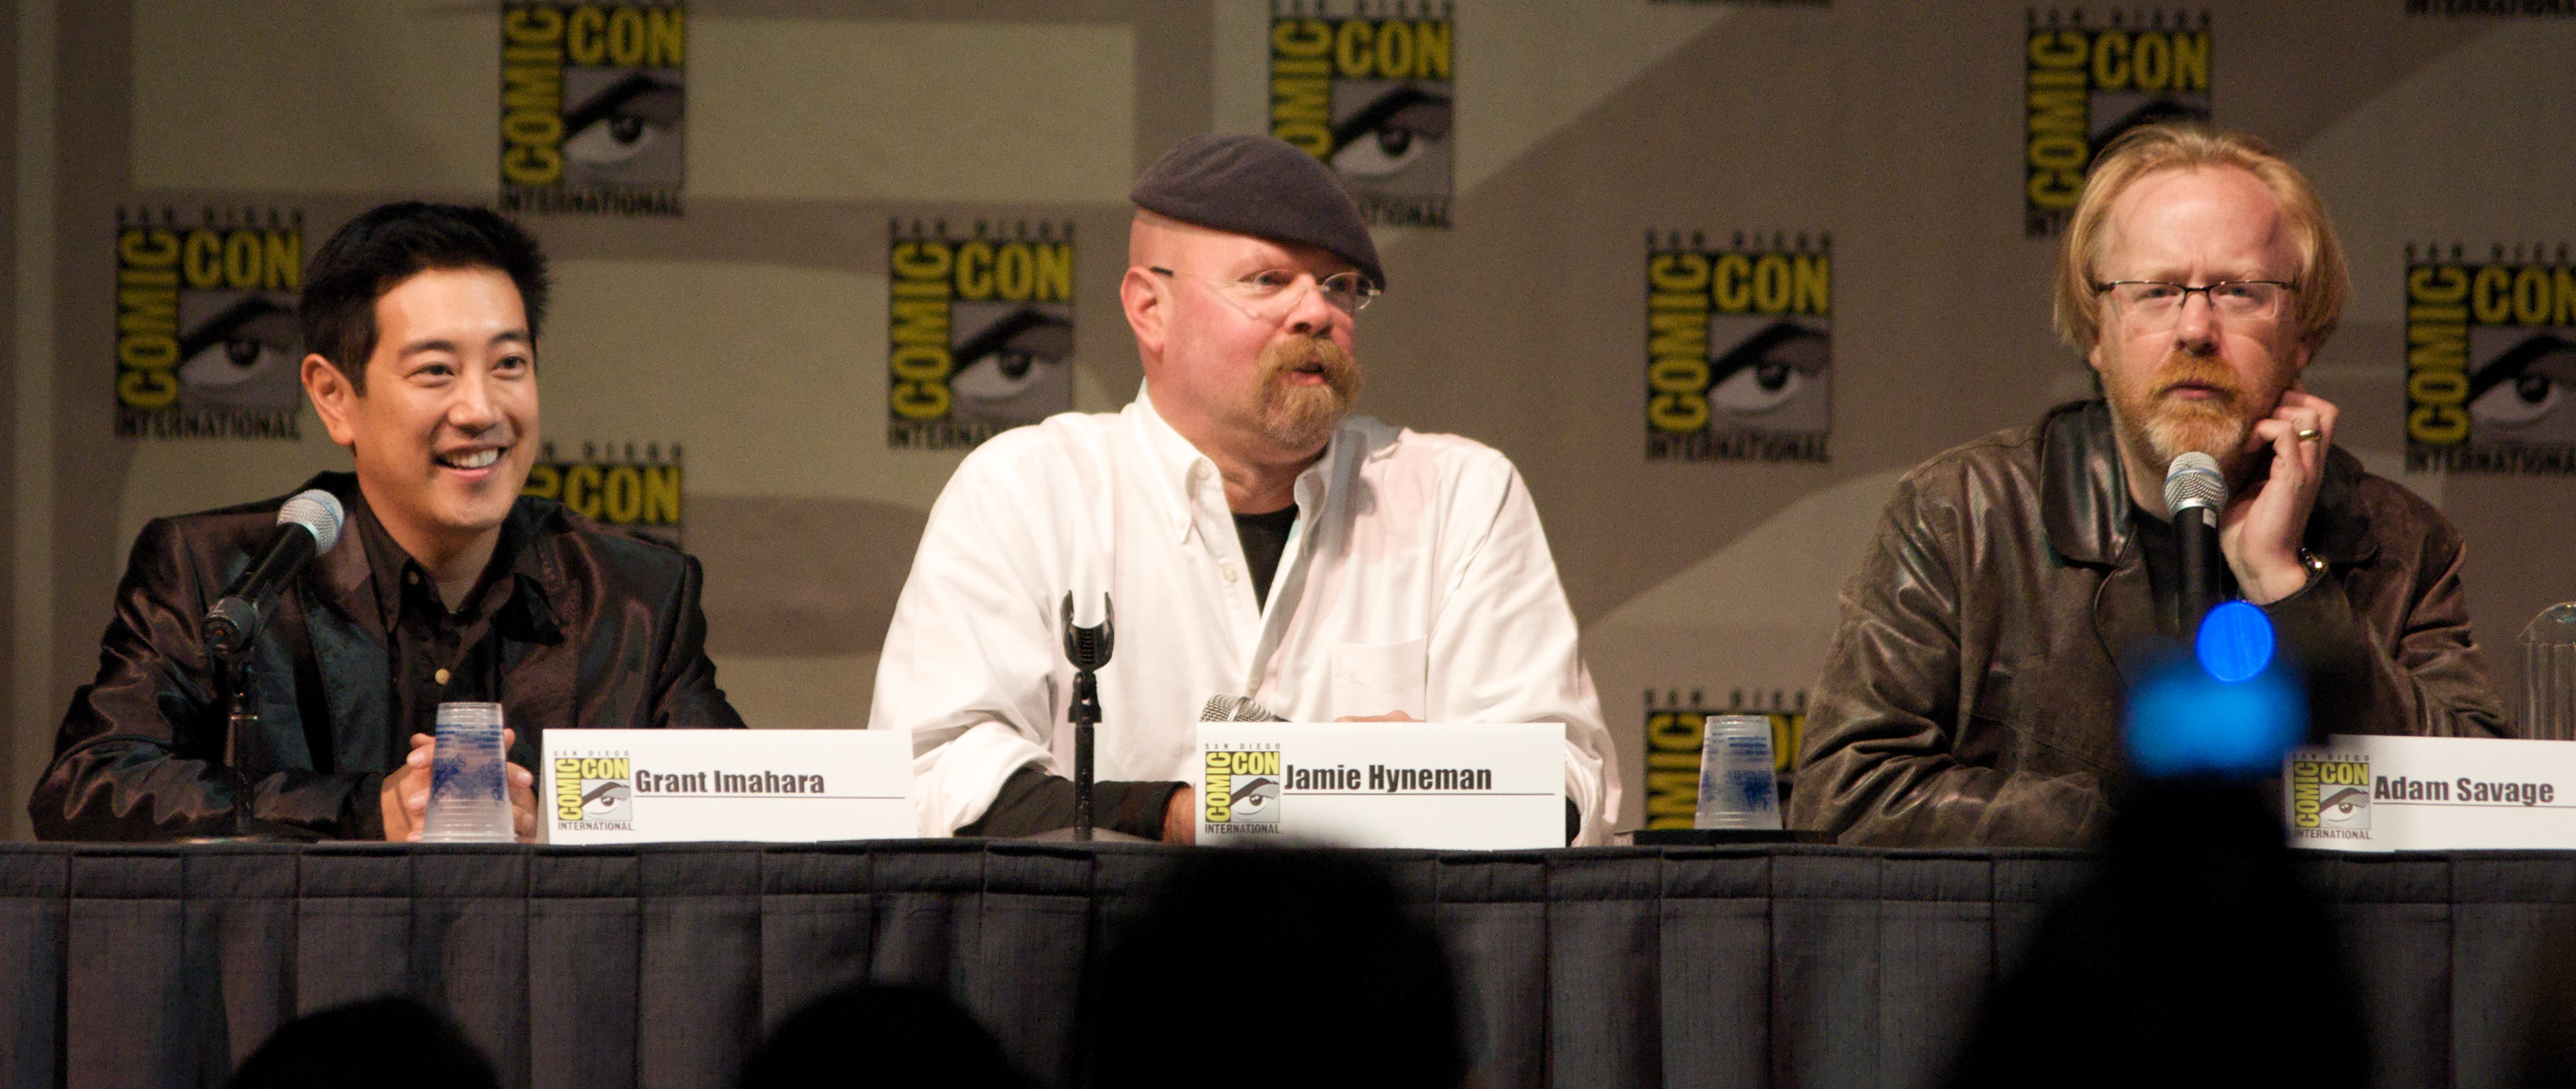 MythBusters at the San Diego ComicCon